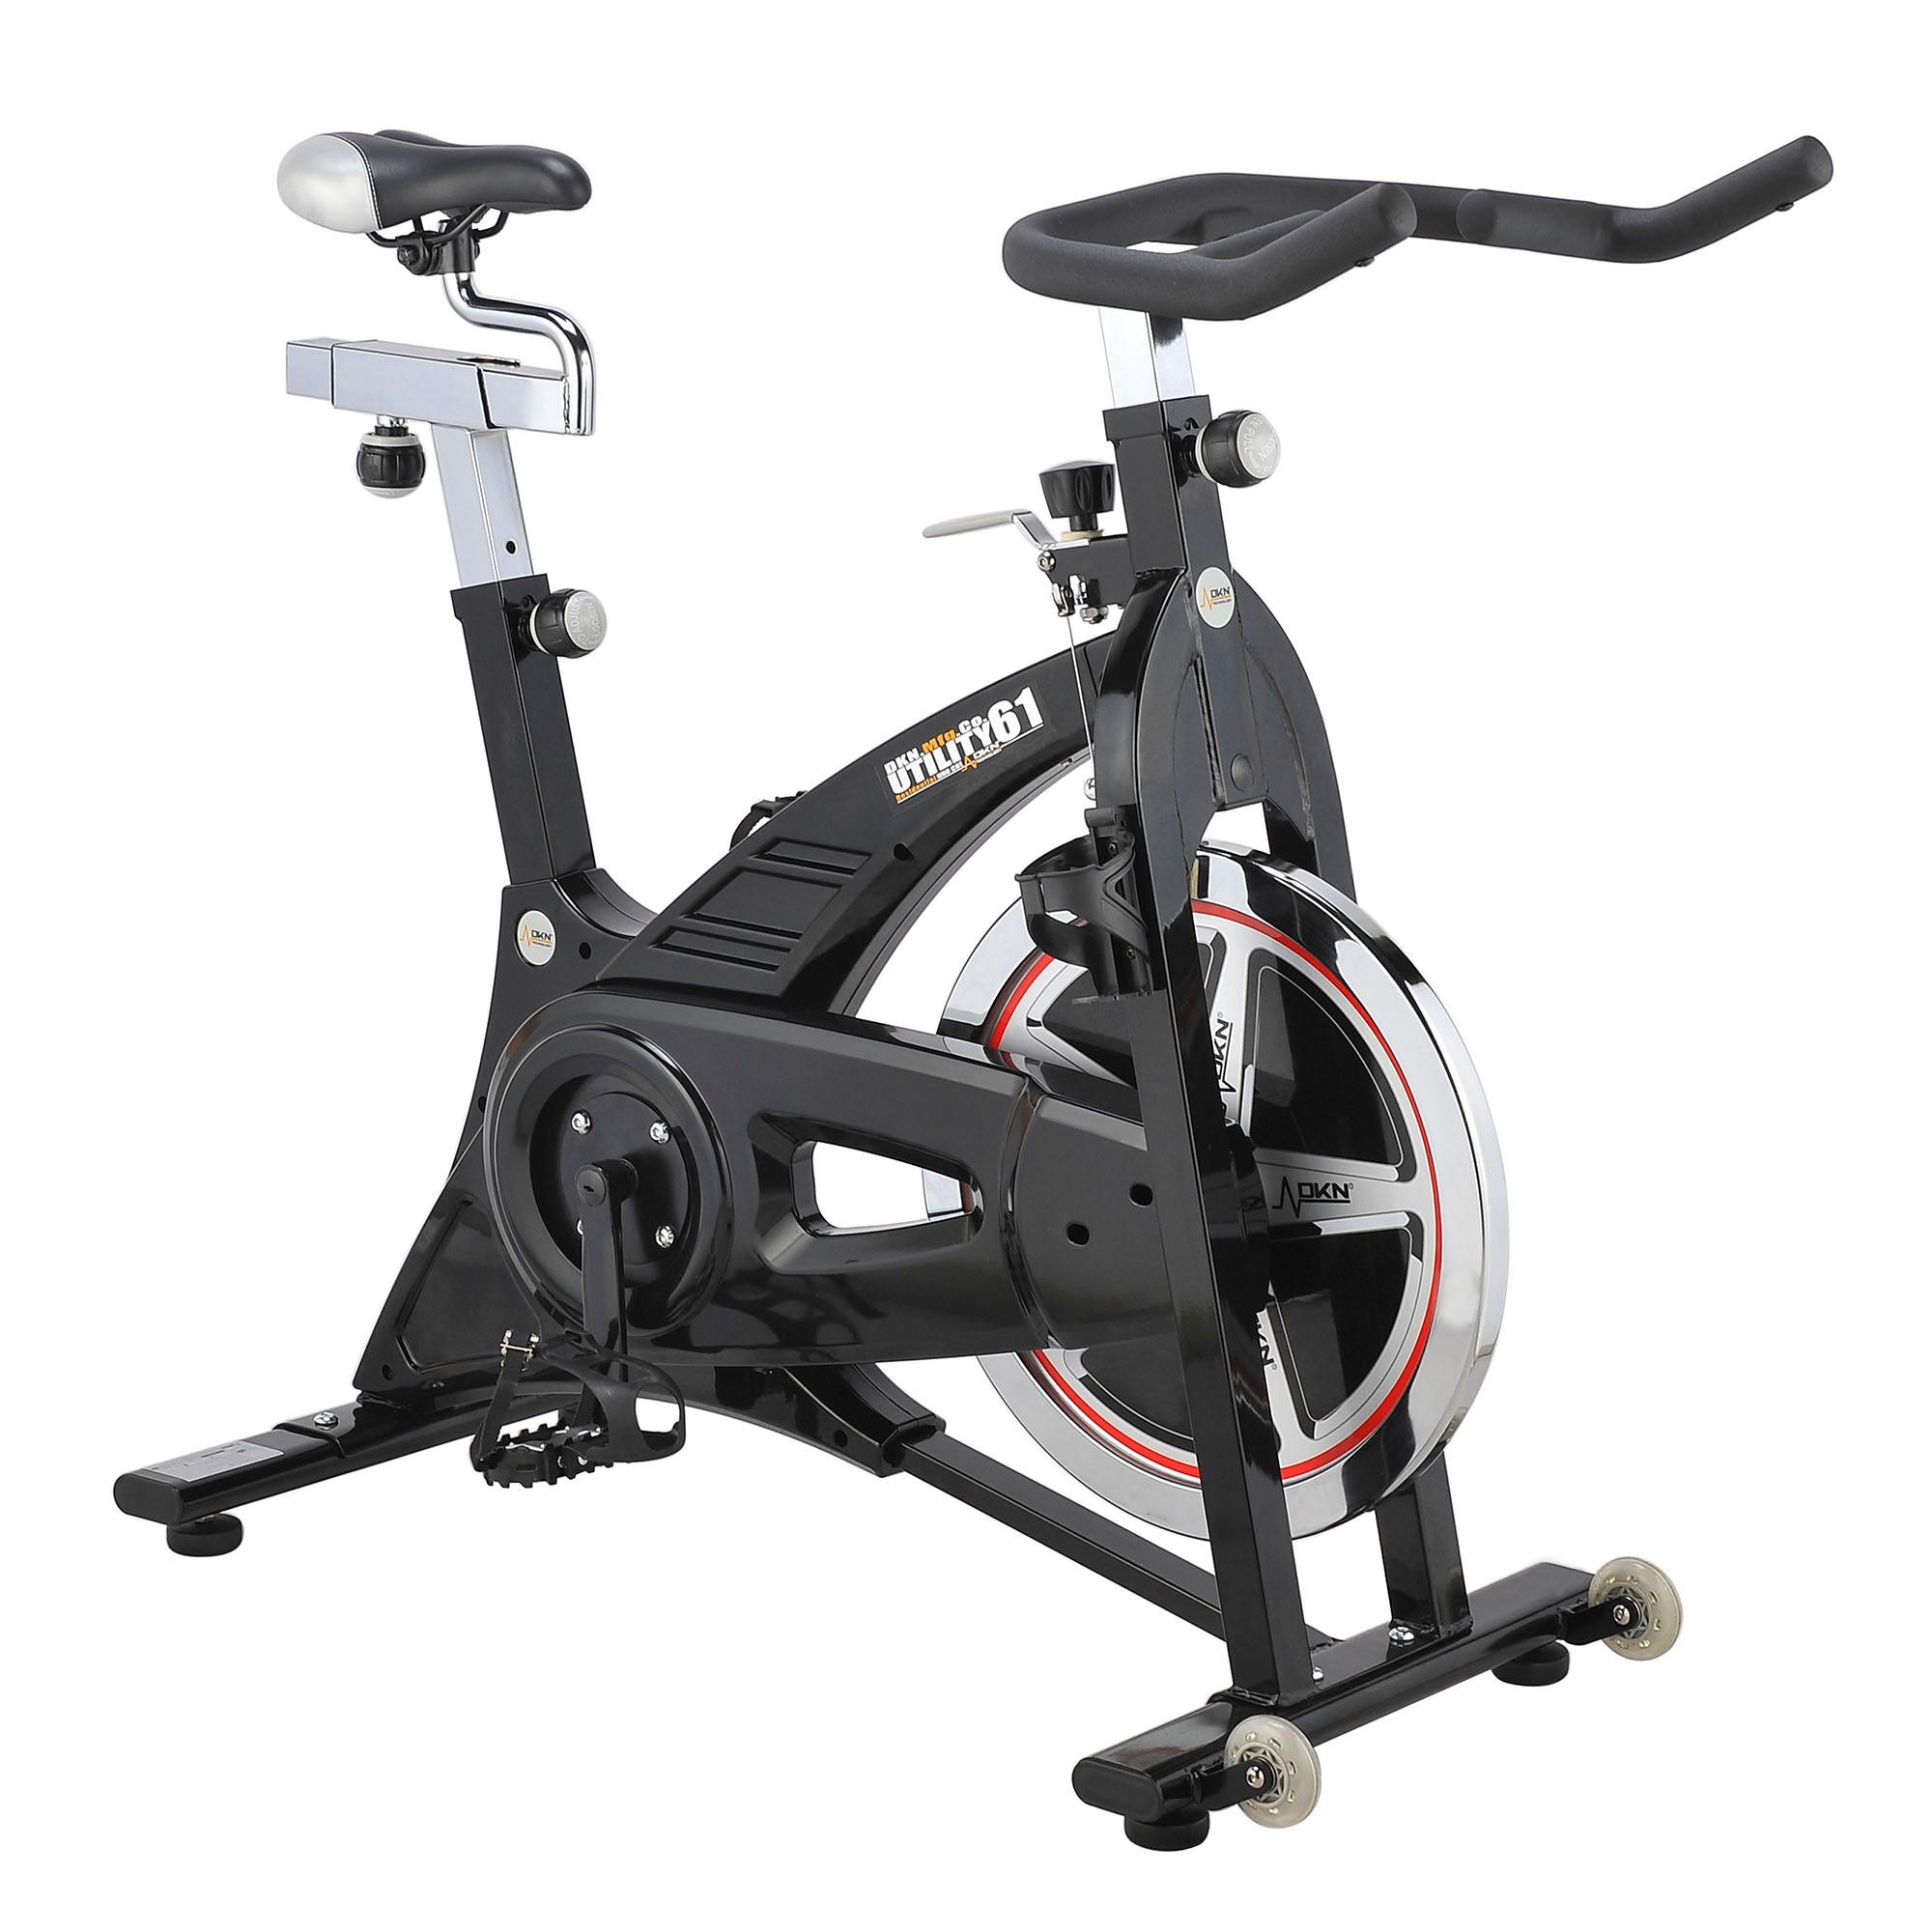 DKN Racer Pro Indoor Cycle